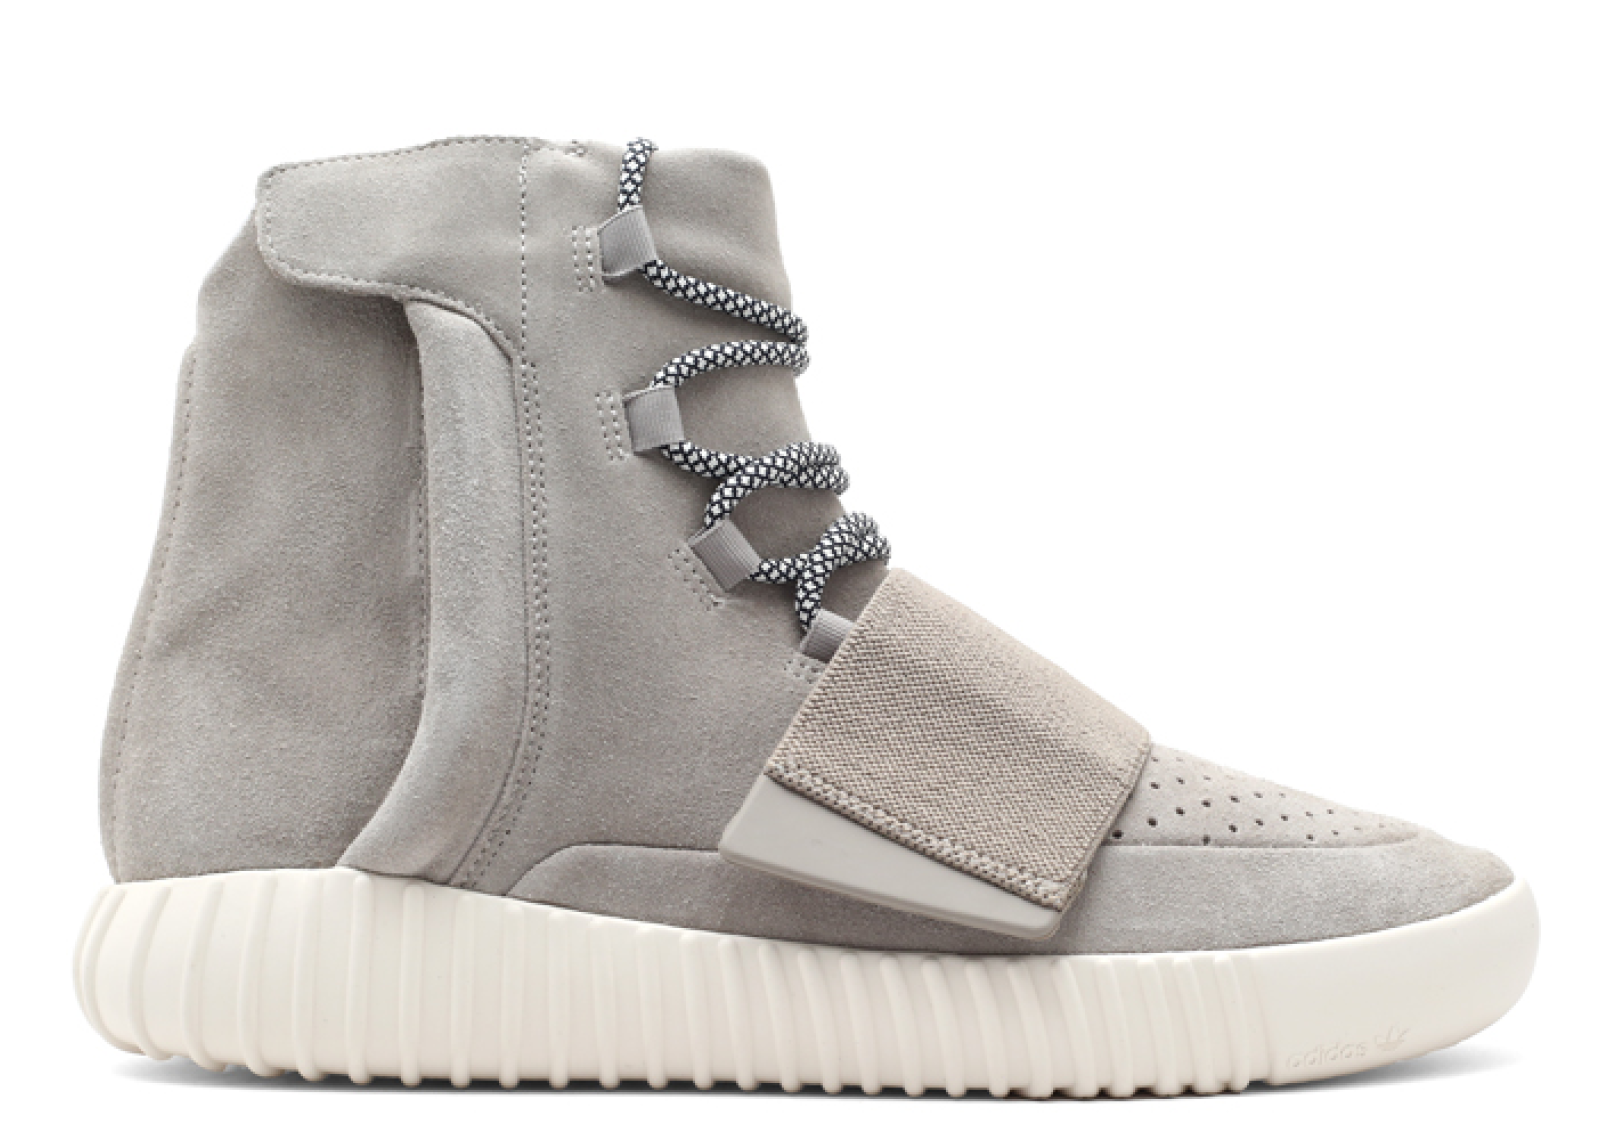 Yeezy Boost 750 OG Light Brown